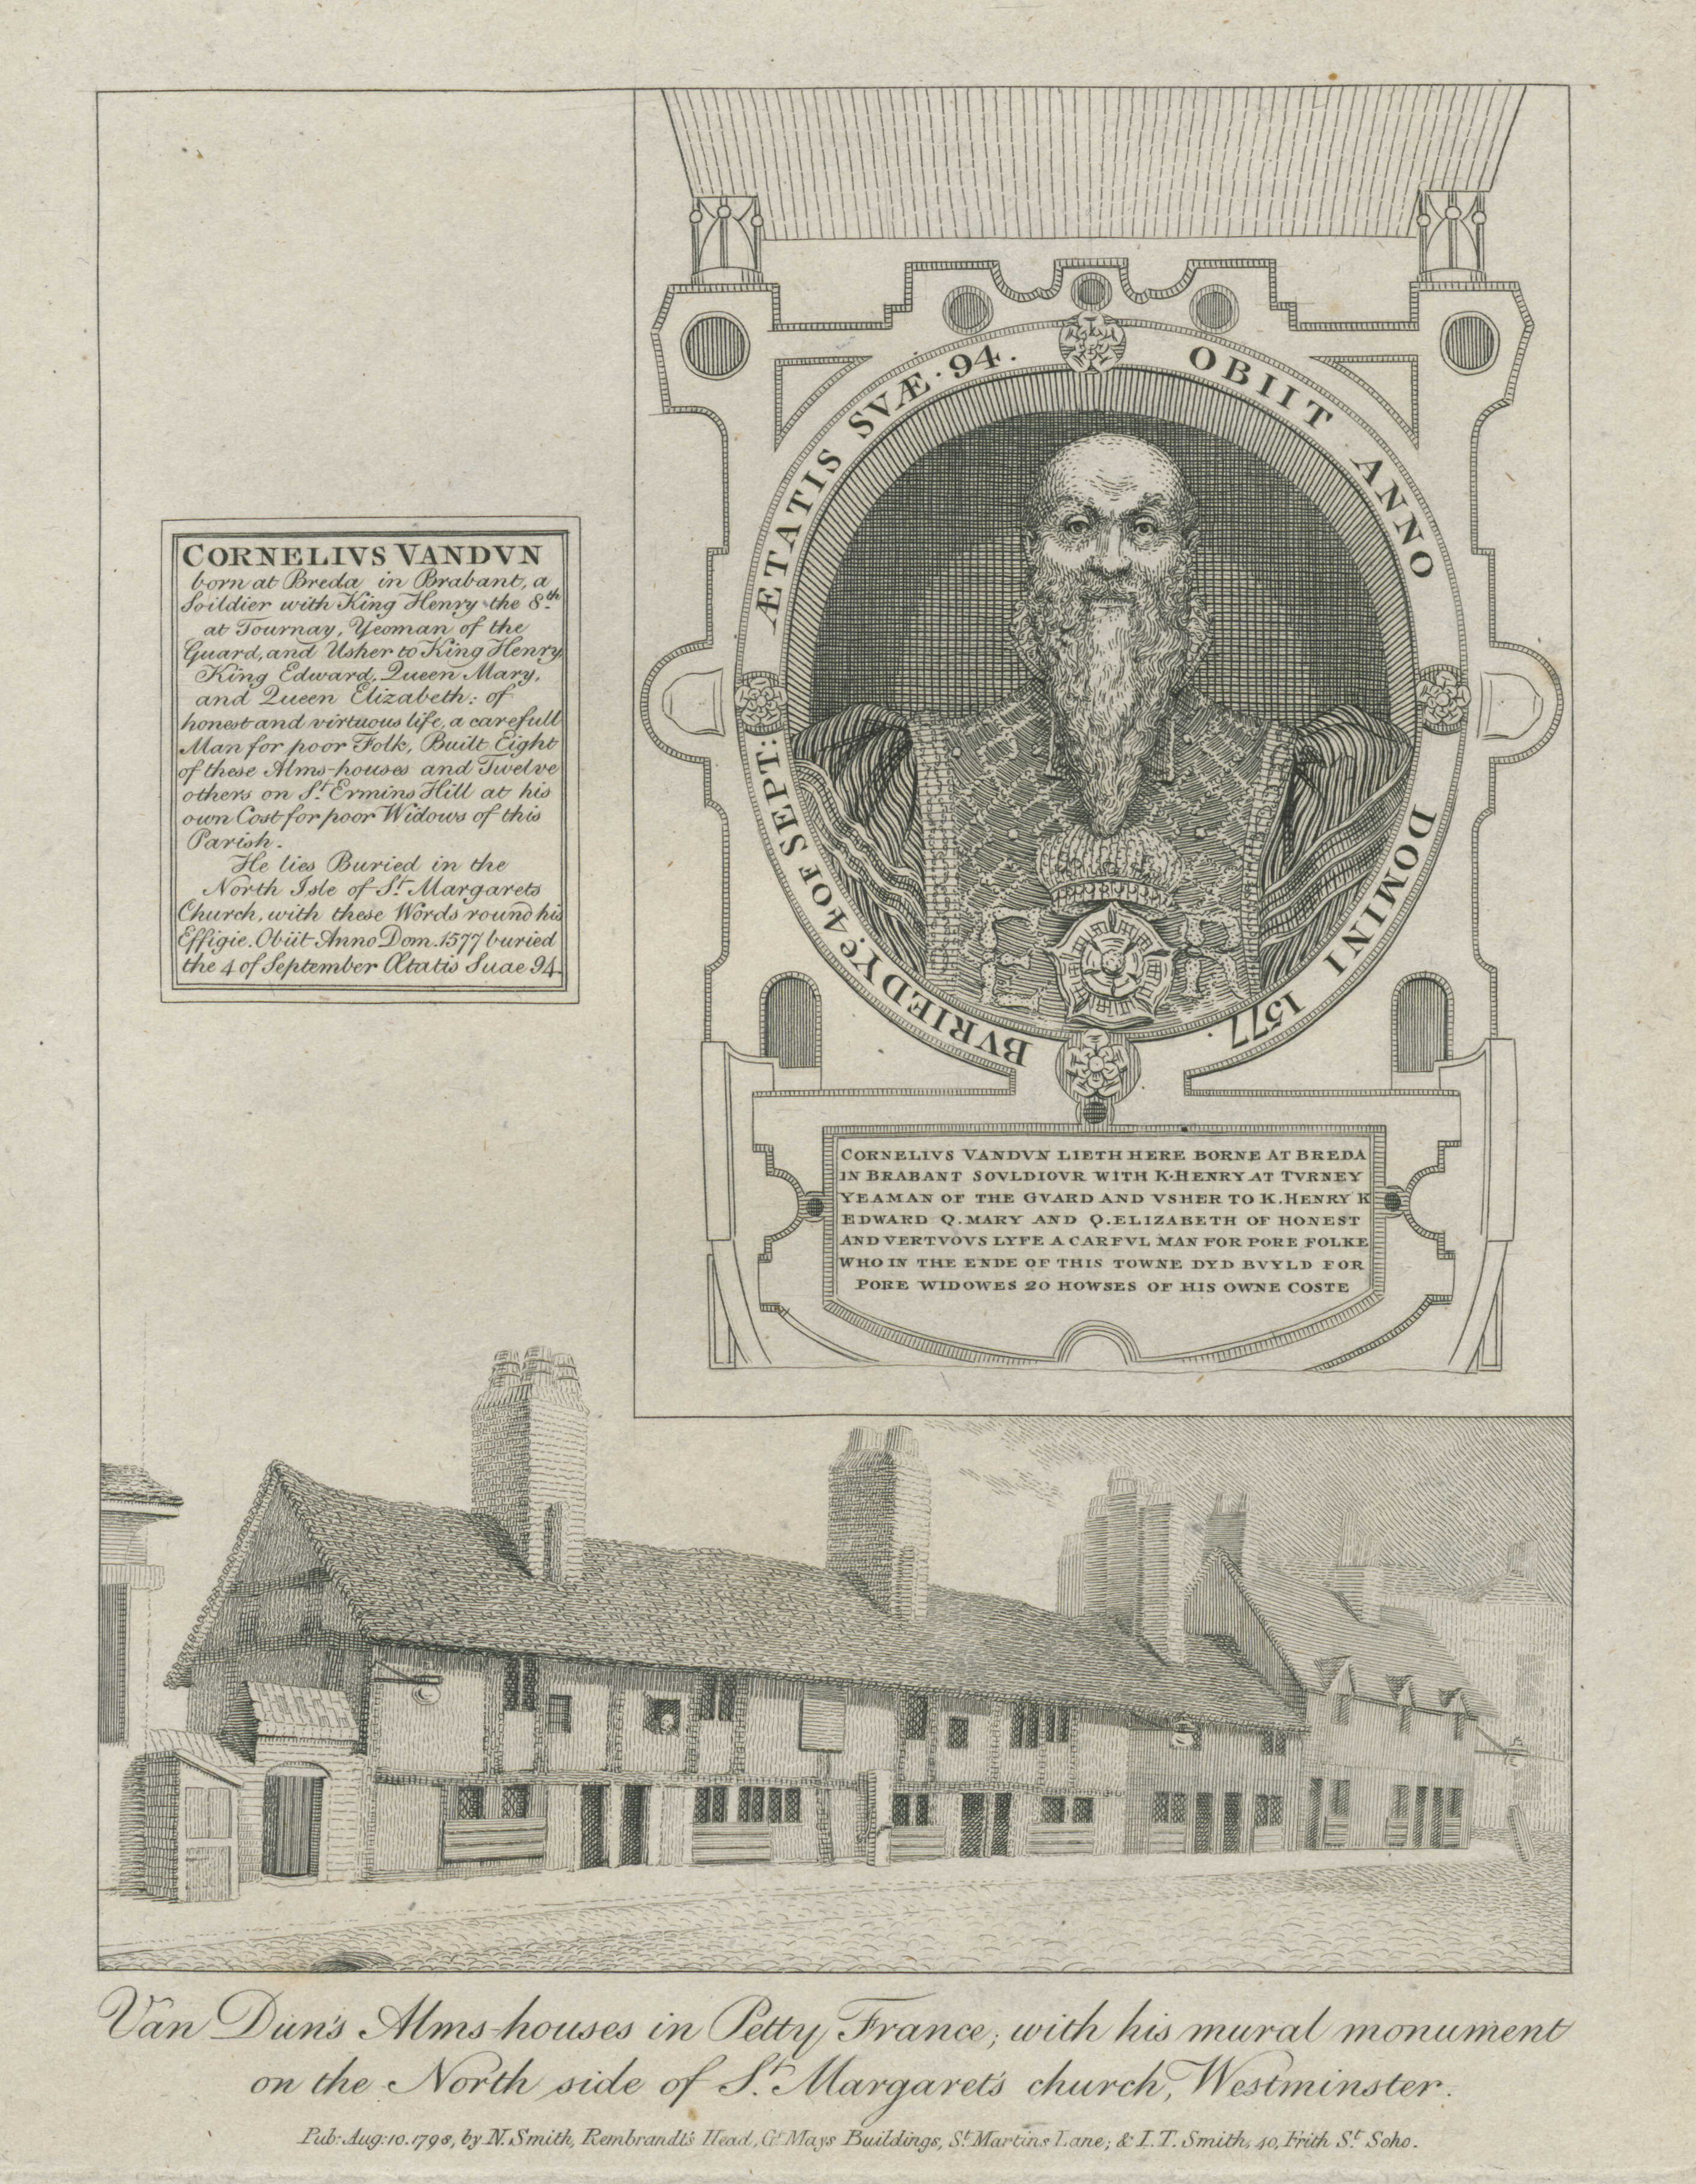 74-van-duns-alms-houses-in-petty-frace-with-his-mural-monument-on-the-north-side-of-st-margarets-church-westminster